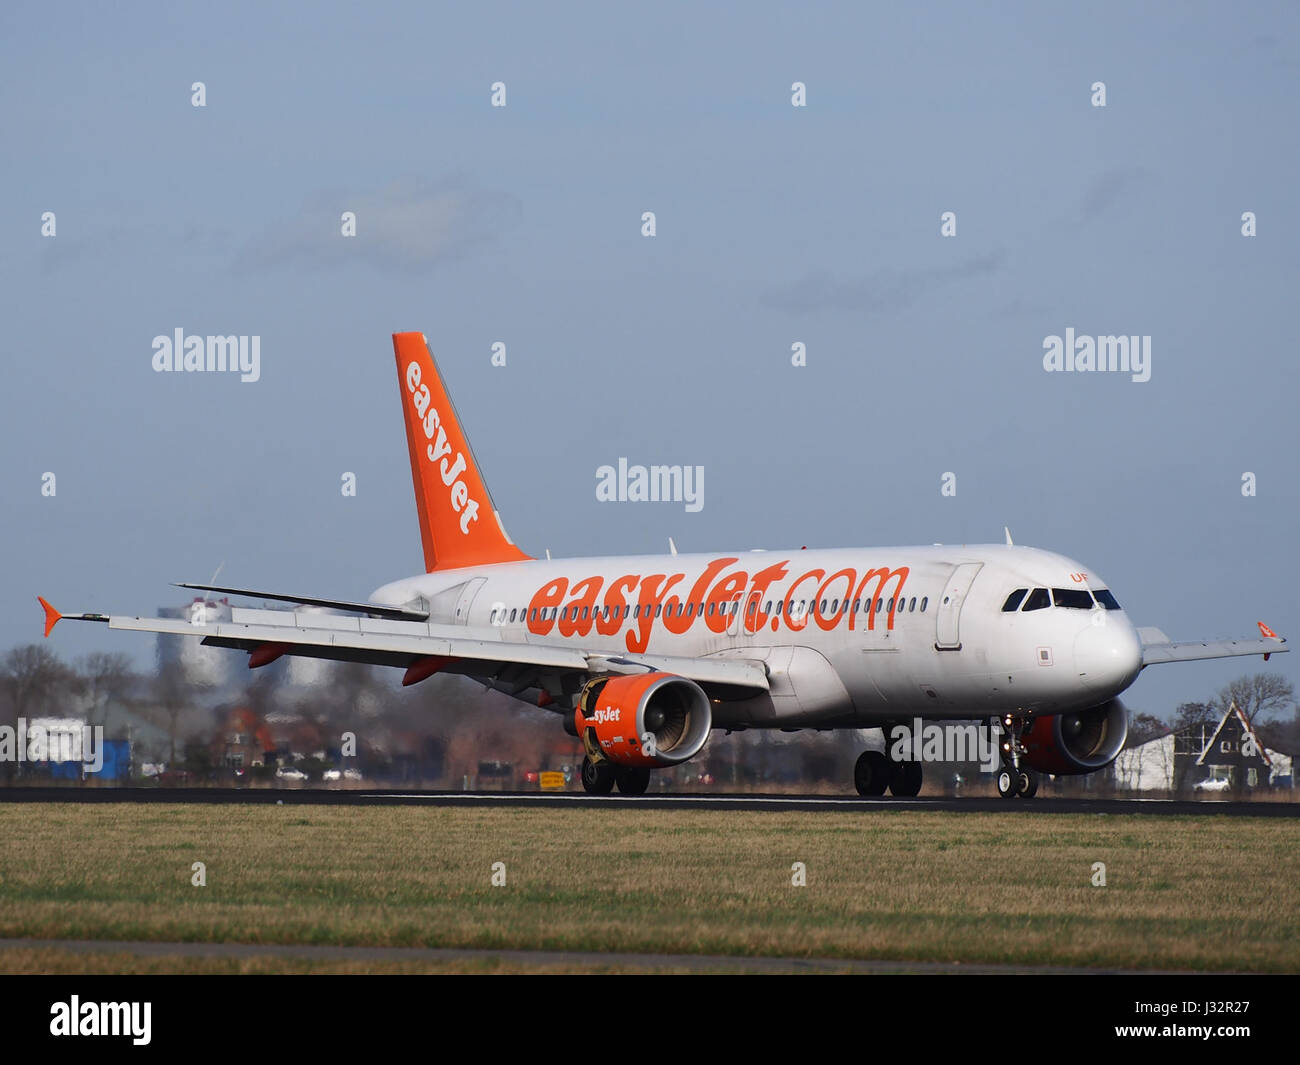 G-EZUF easyJet Airbus A320-214 cn4676 at Schiphol (AMS - EHAM), The Netherlands pic1 - Stock Image